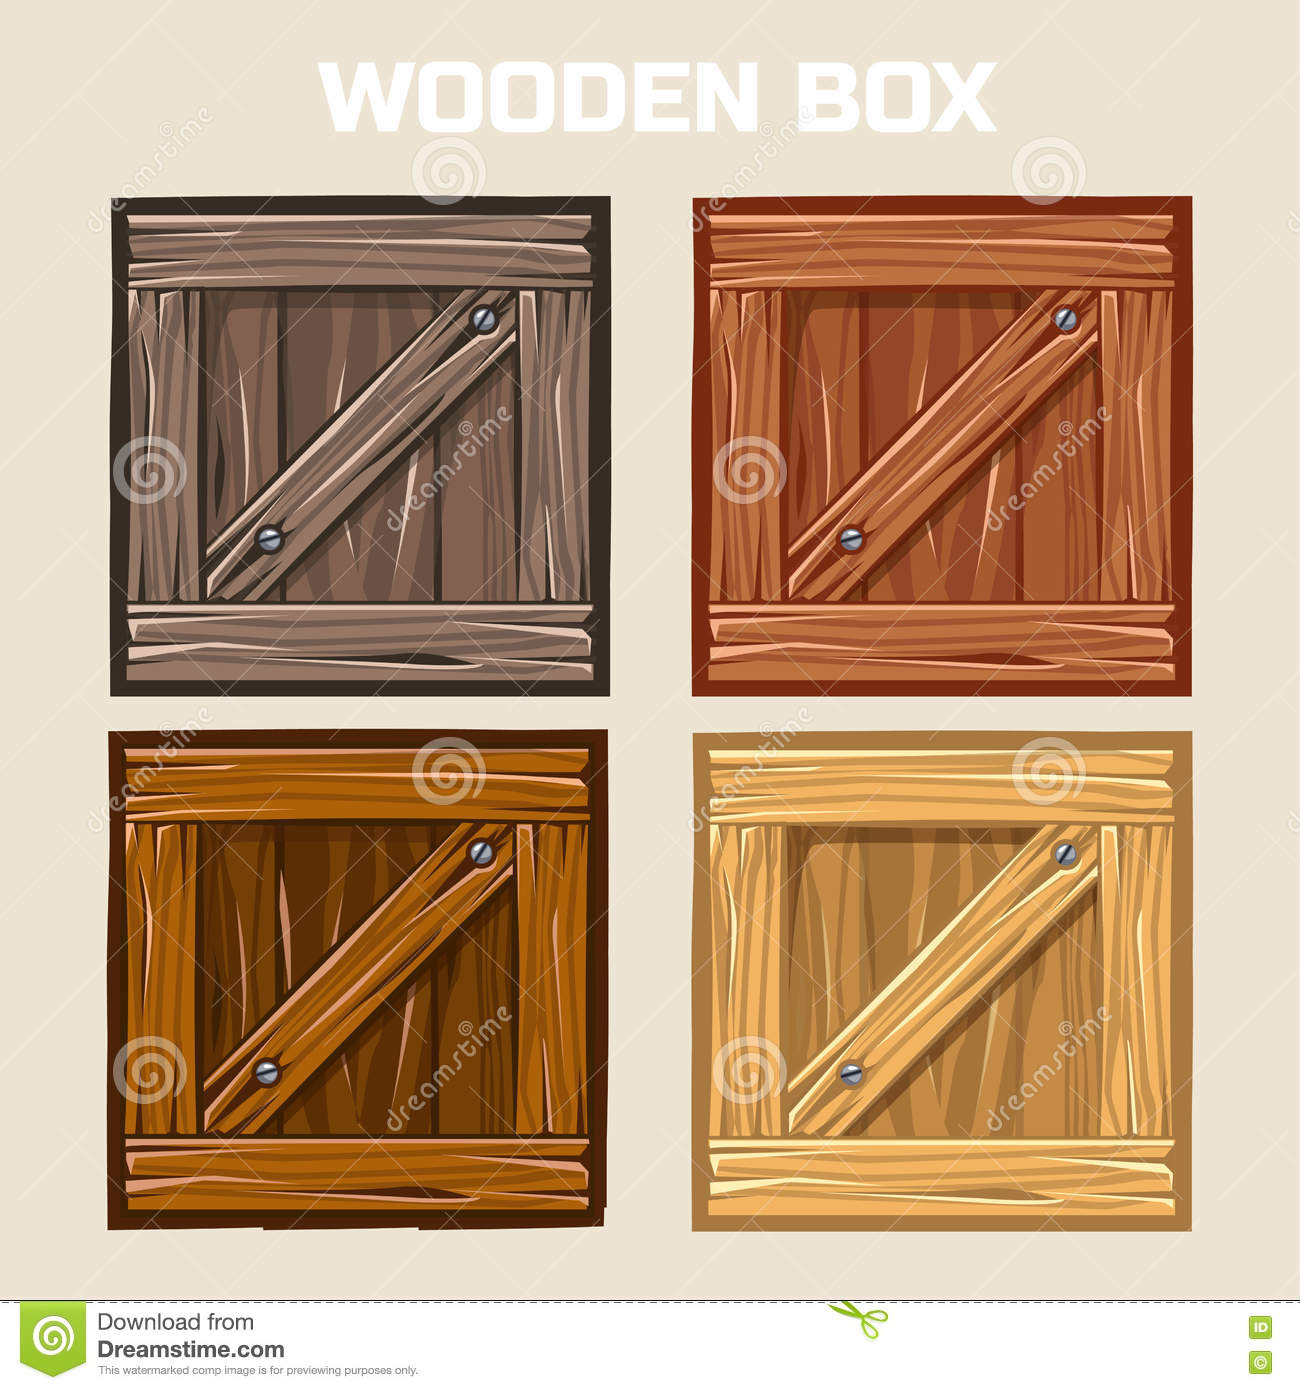 Wooden Box, Game Element Stock Vector - Image: 71508134